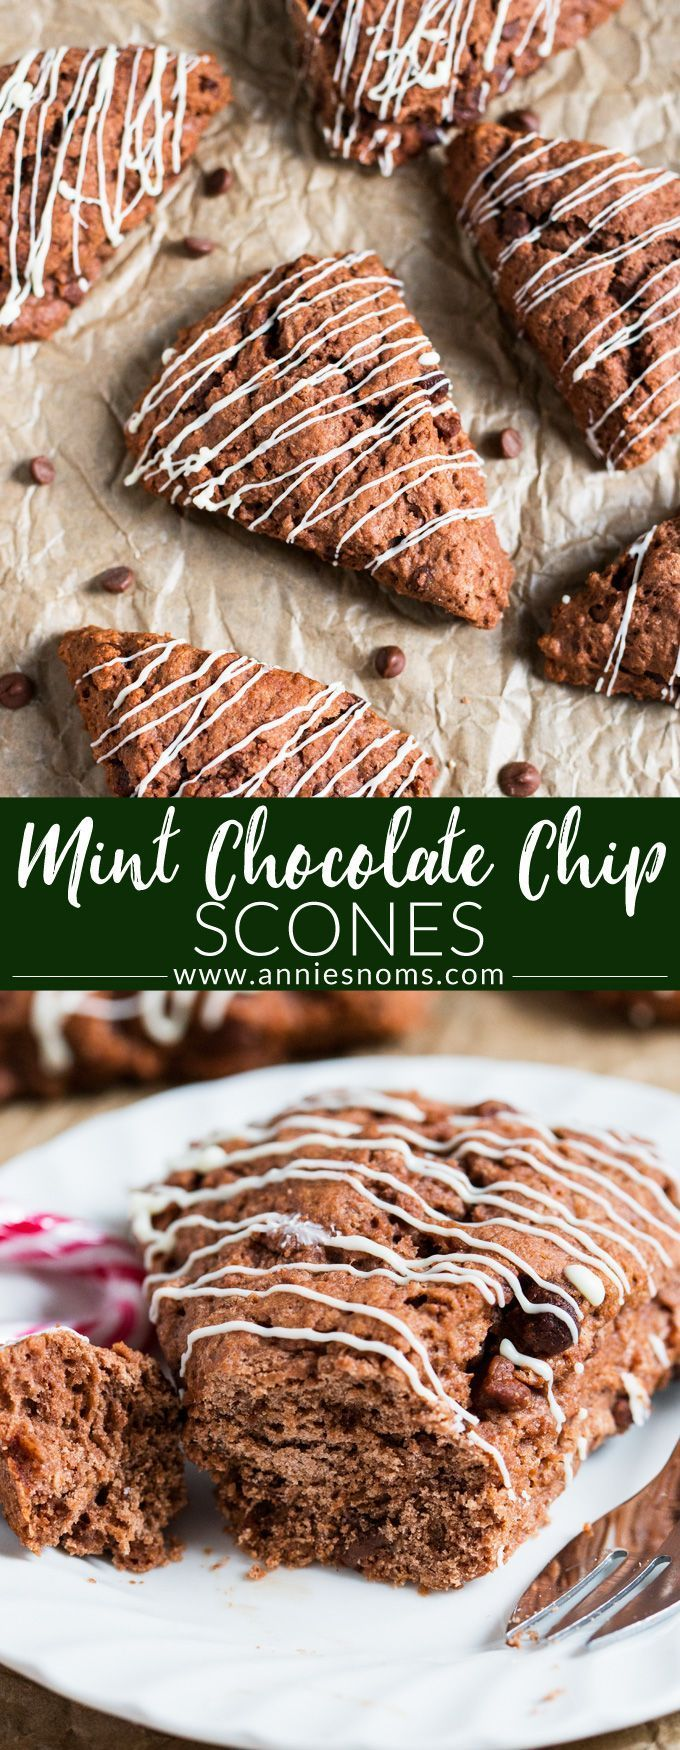 These mint chocolate scones are filled with gooey chocolate chips and plenty of mint flavour. The perfect chocolate for breakfast festive #recipe! #christmas #scones #mintchocolate